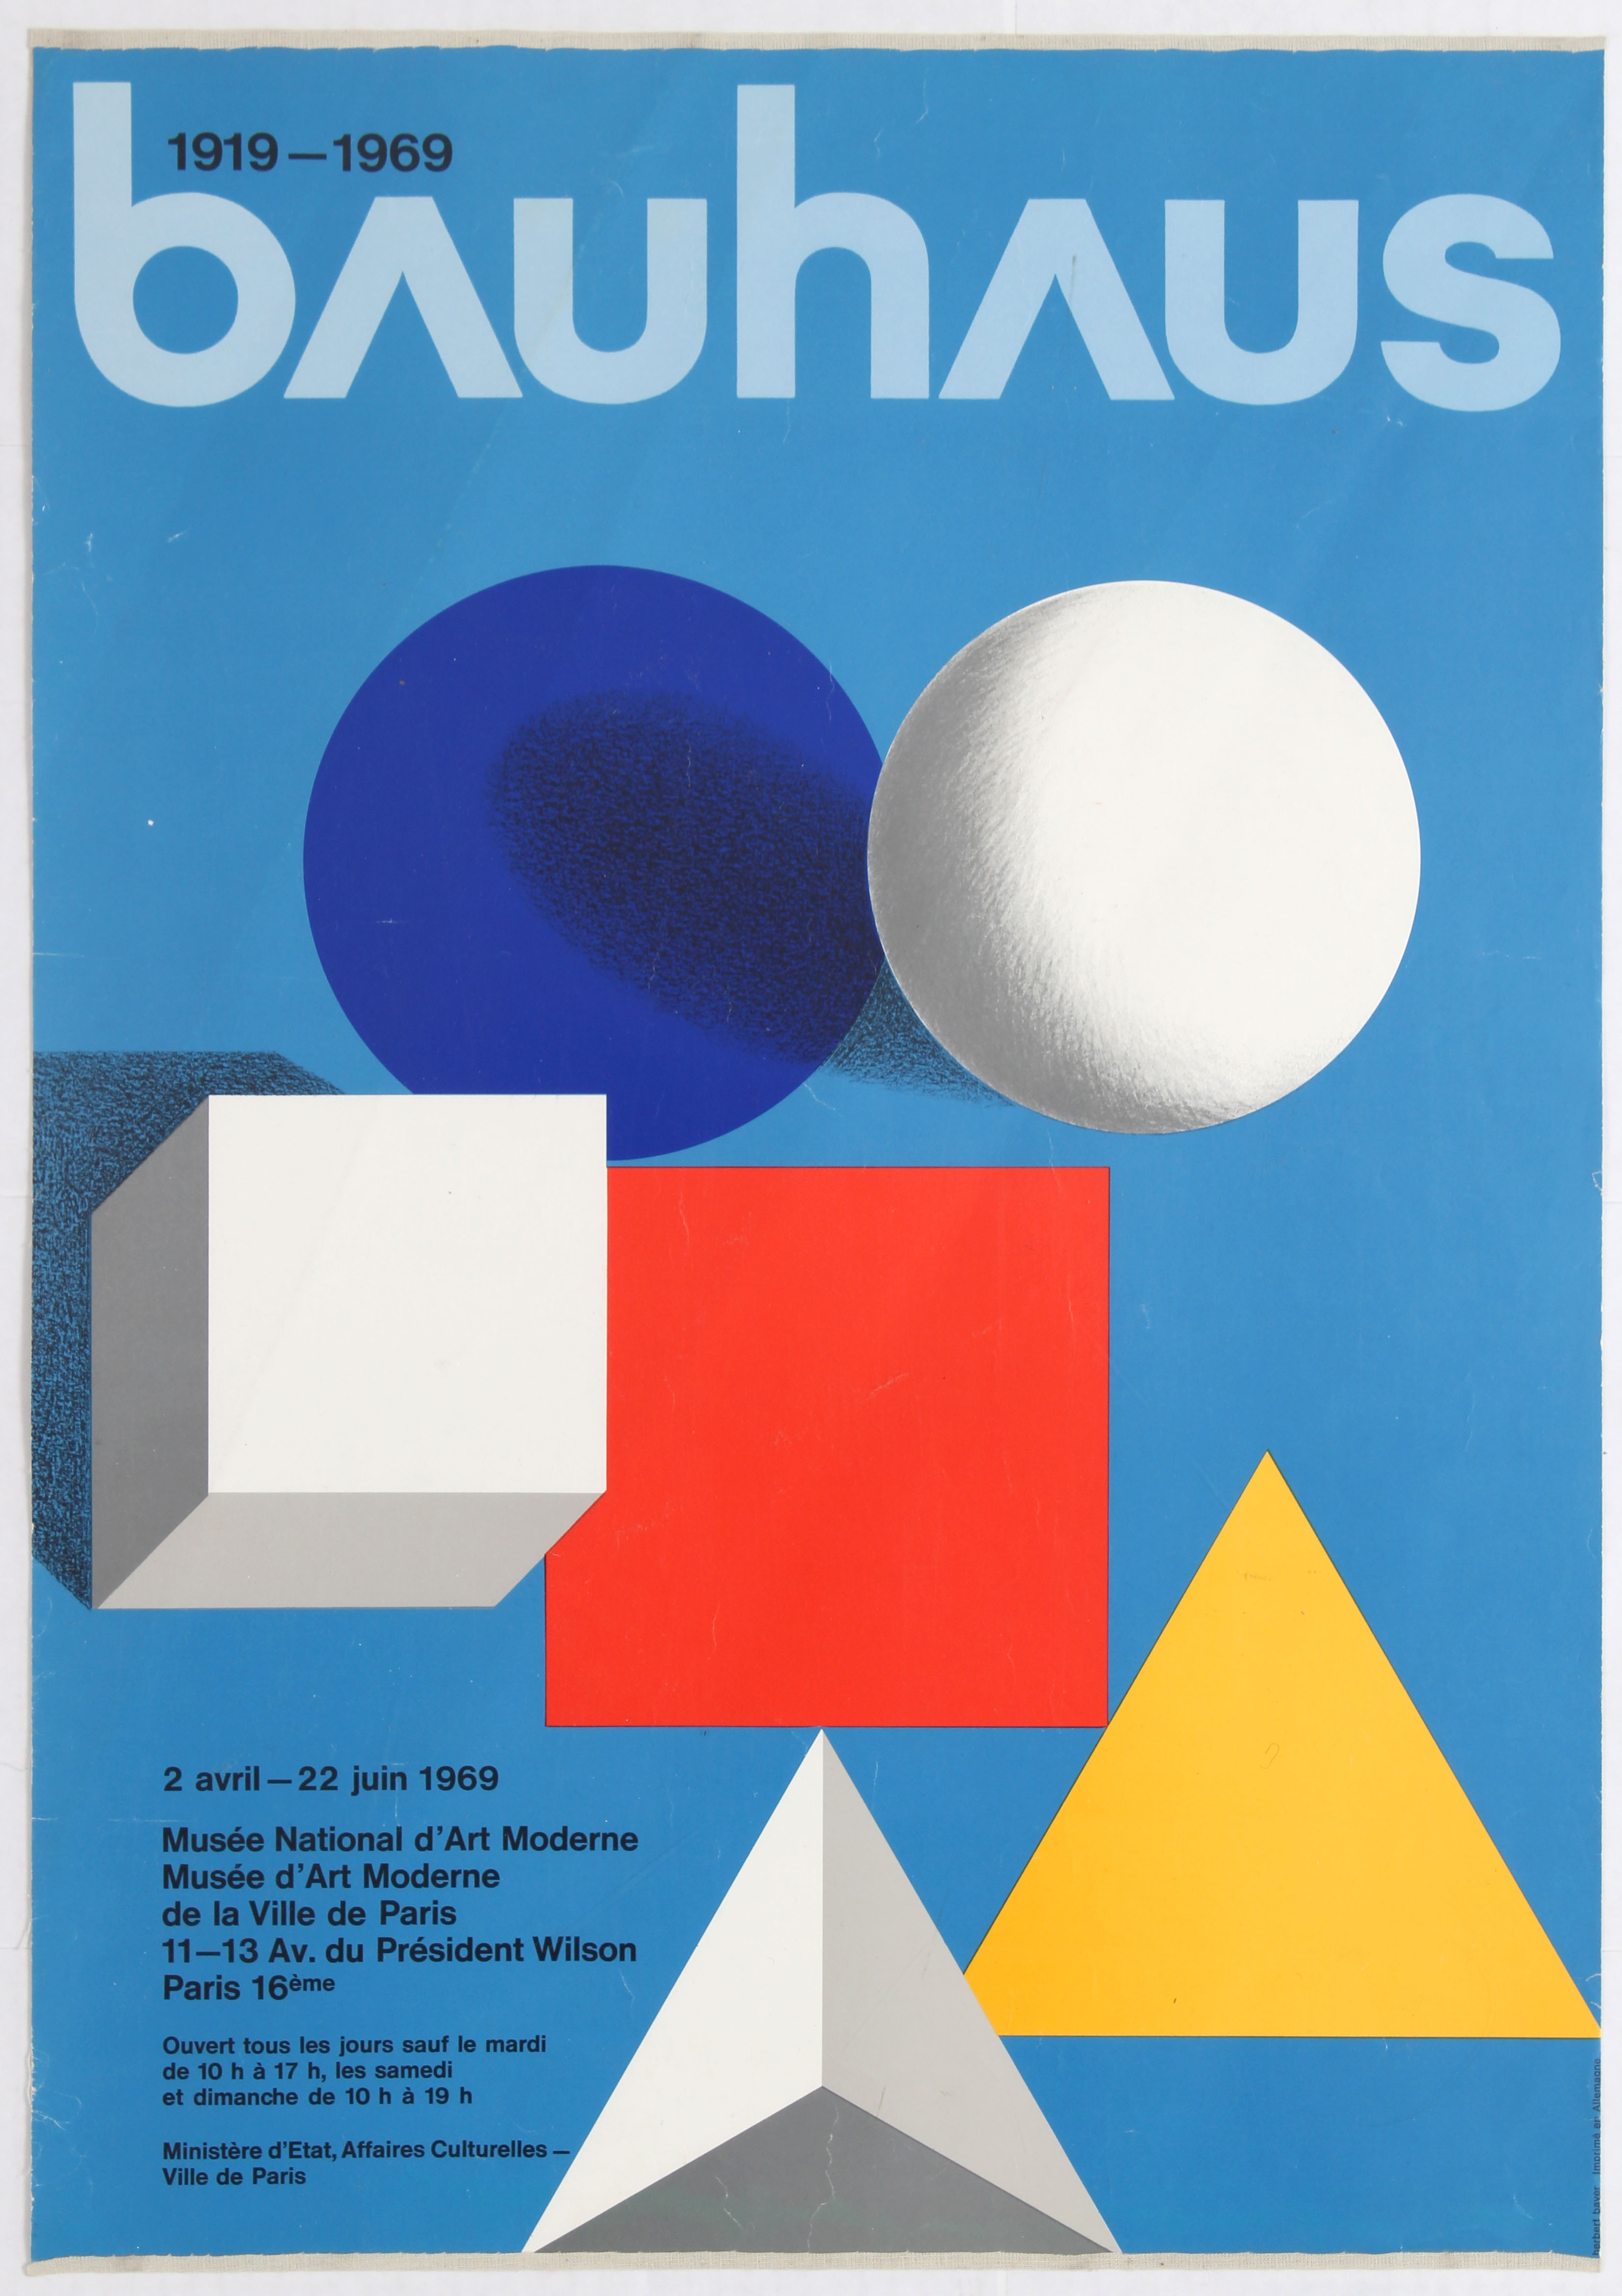 Lot 1601 - Exhibition Advertising Poster 50 years of Bauhaus